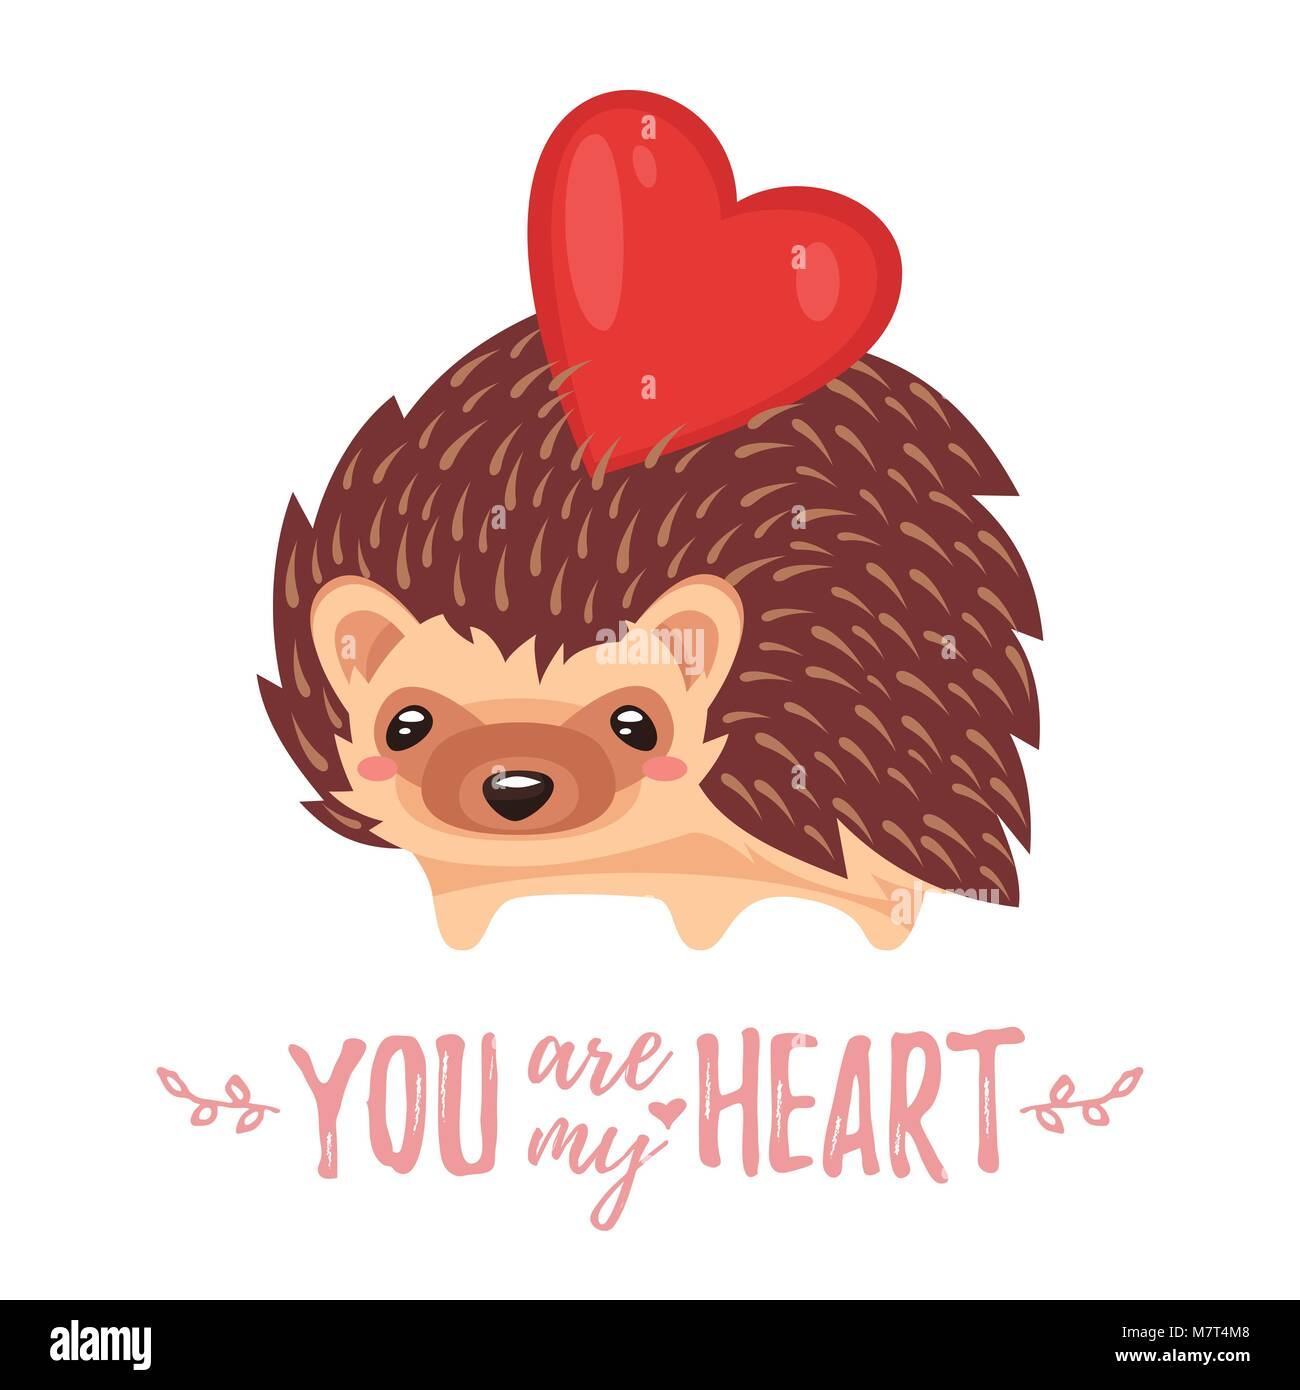 Vector cartoon style illustration of Valentine's day romantic gift card with cute hedgehog and heart on his - Stock Image